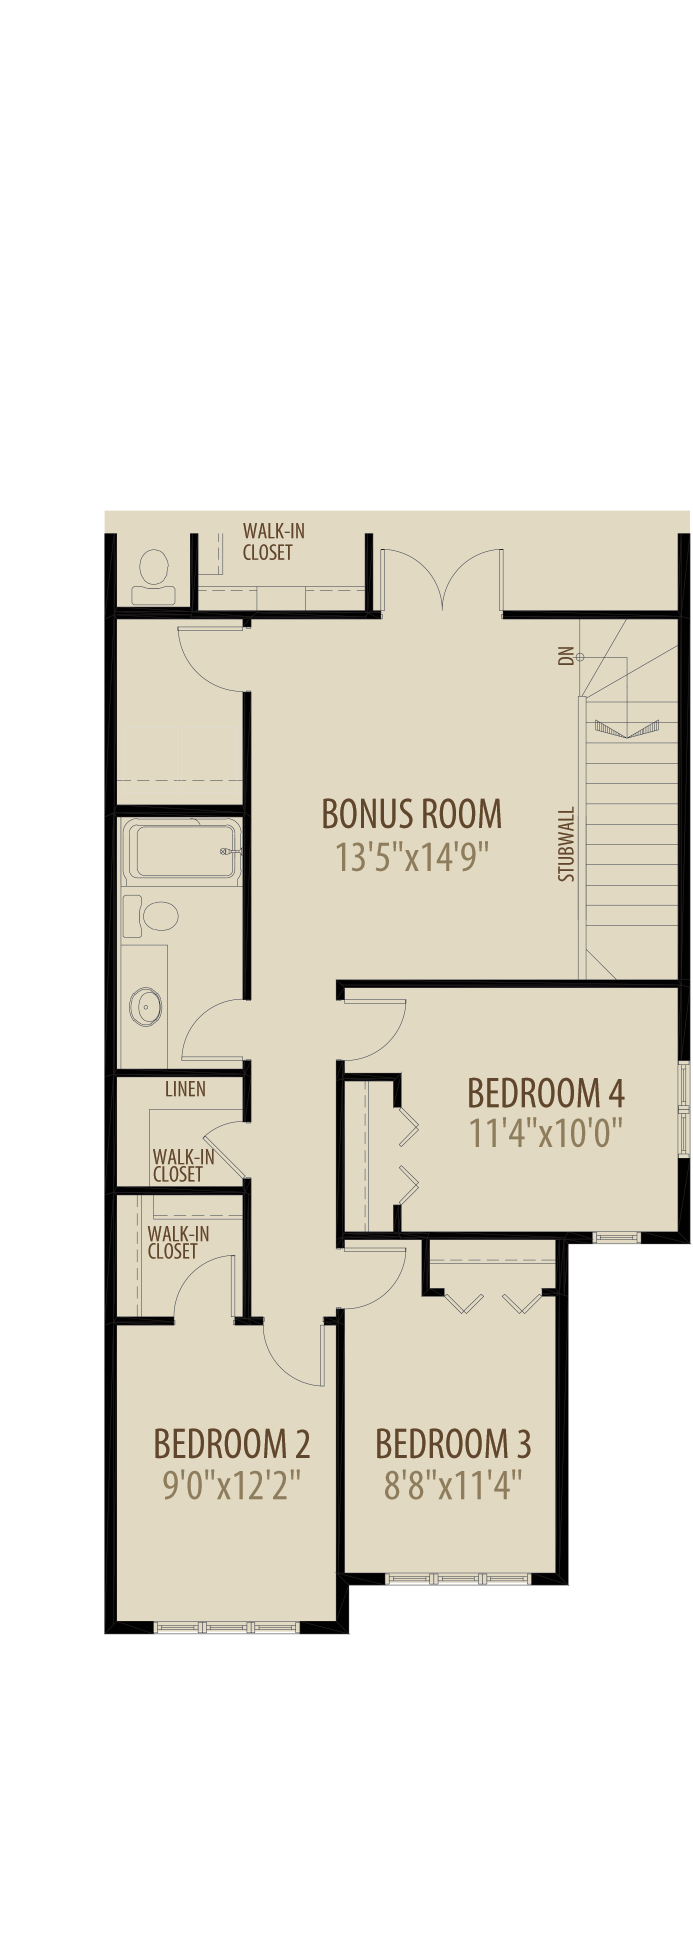 Option 3 4th Bedroom adds 229 sq ft